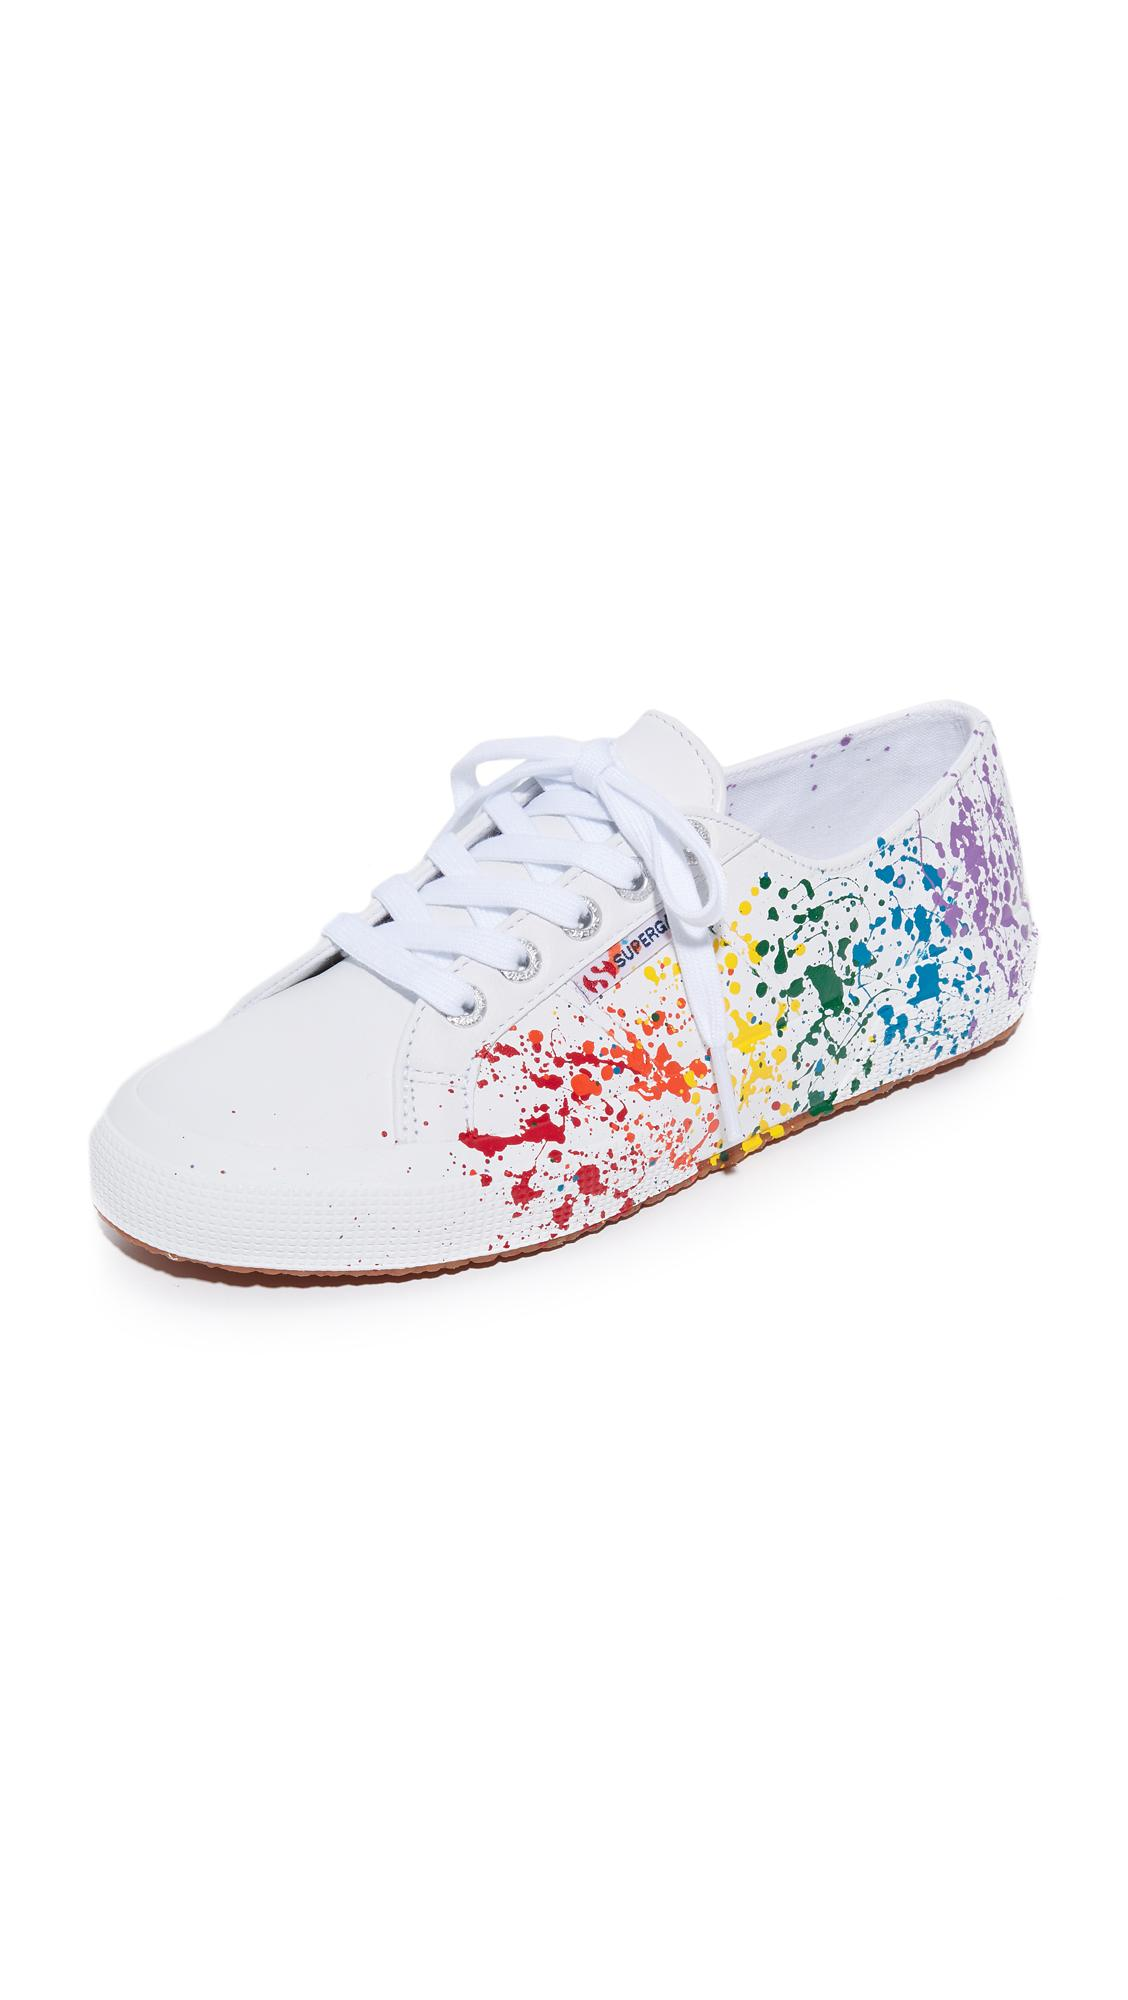 Superga 2750 Leather Splatter Paint Sneakers In White Lyst